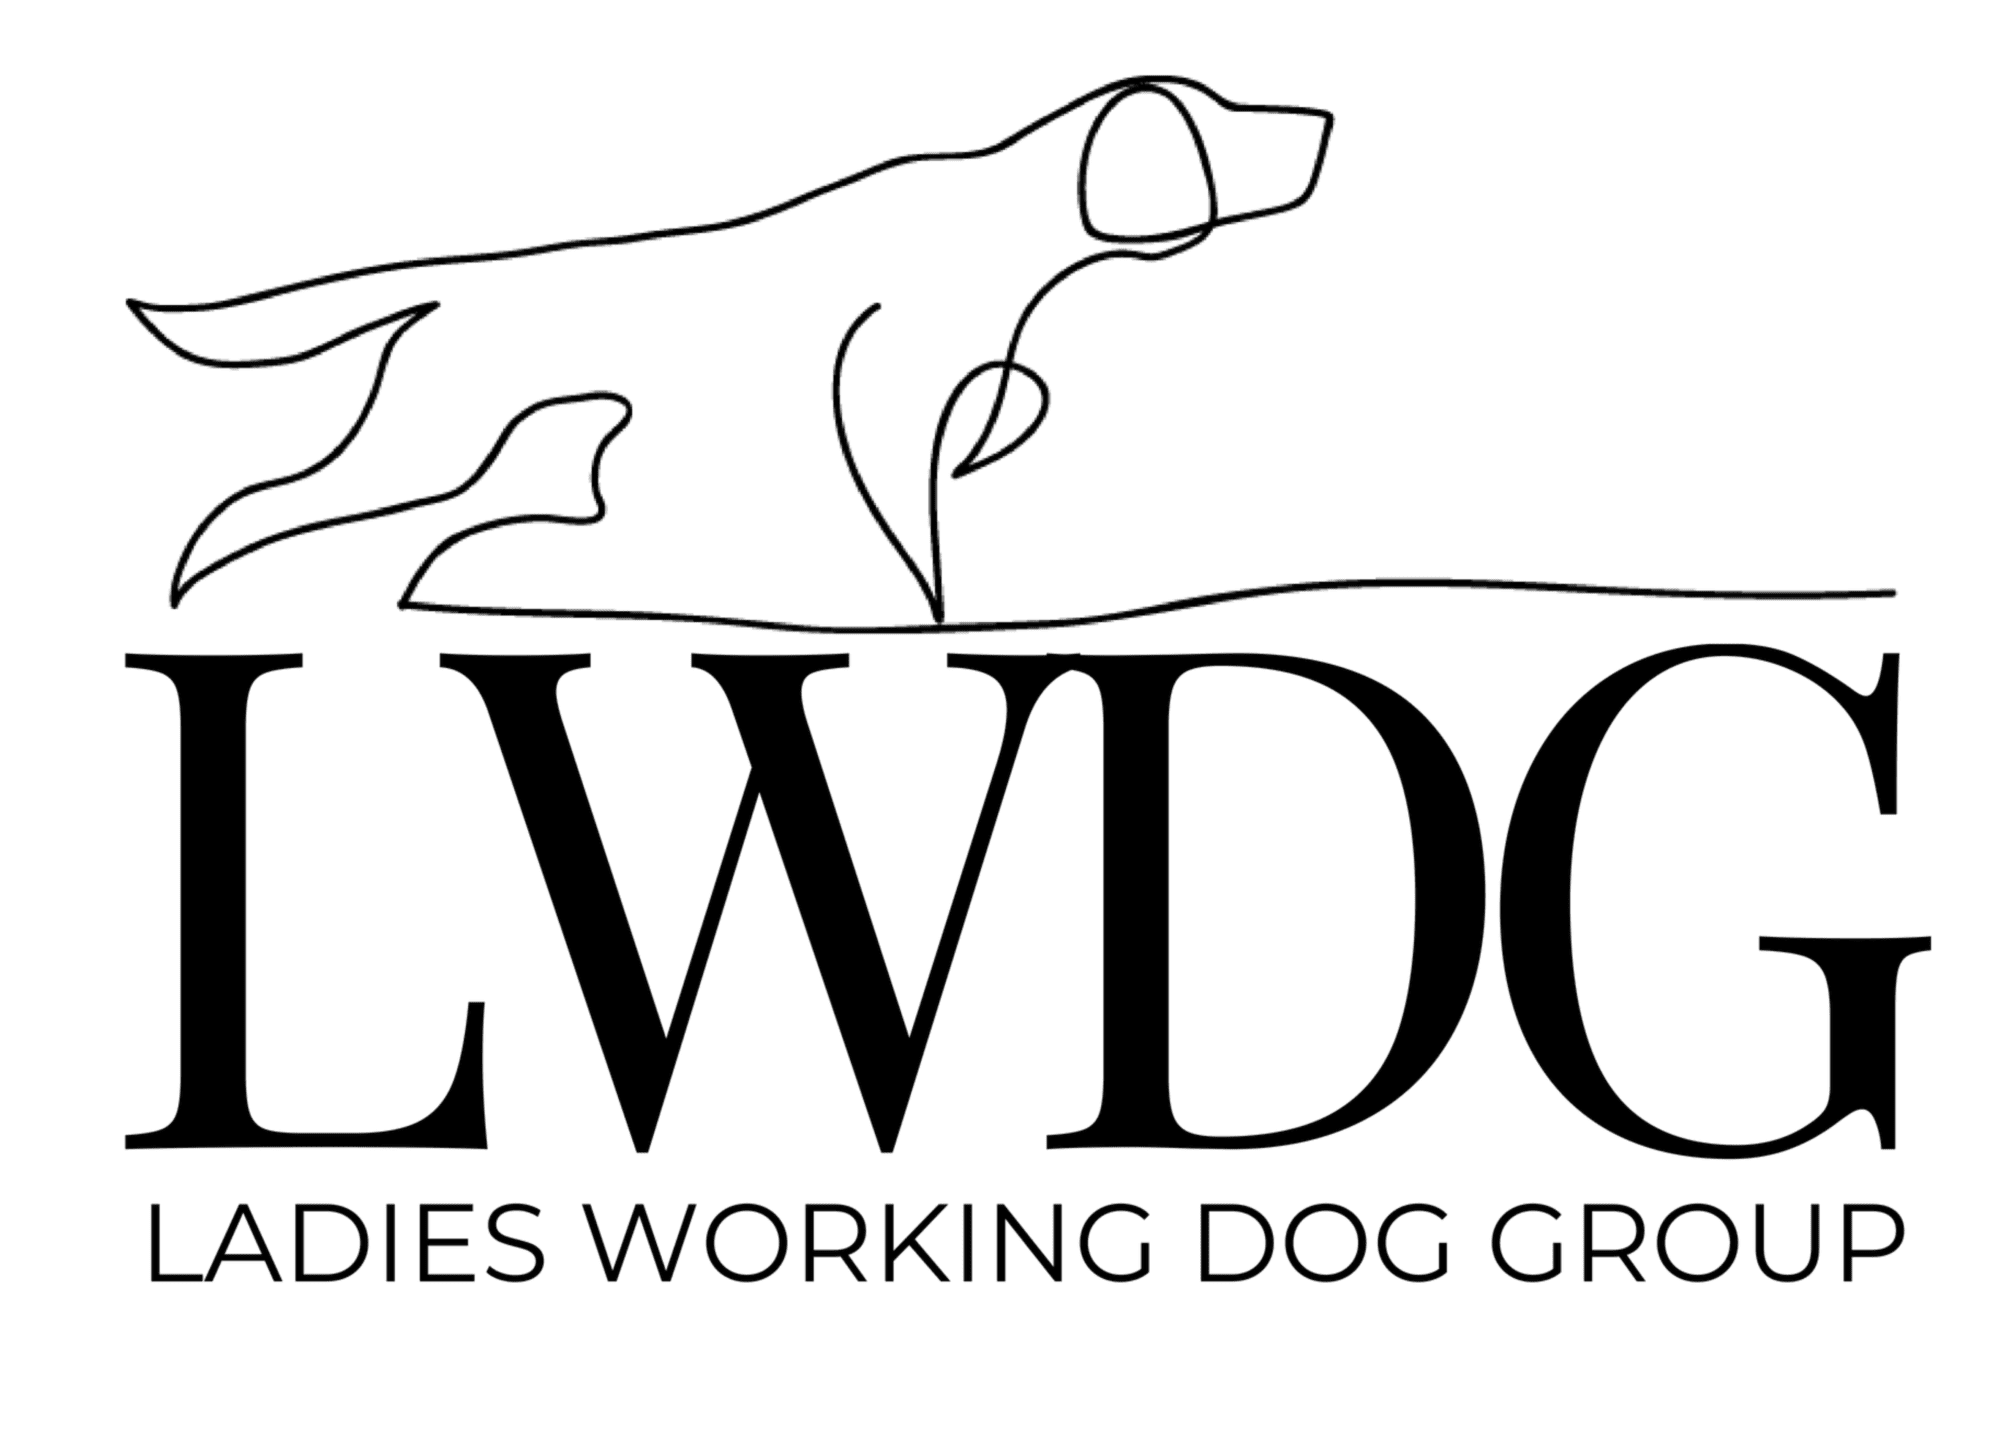 The Ladies Working Dog Group